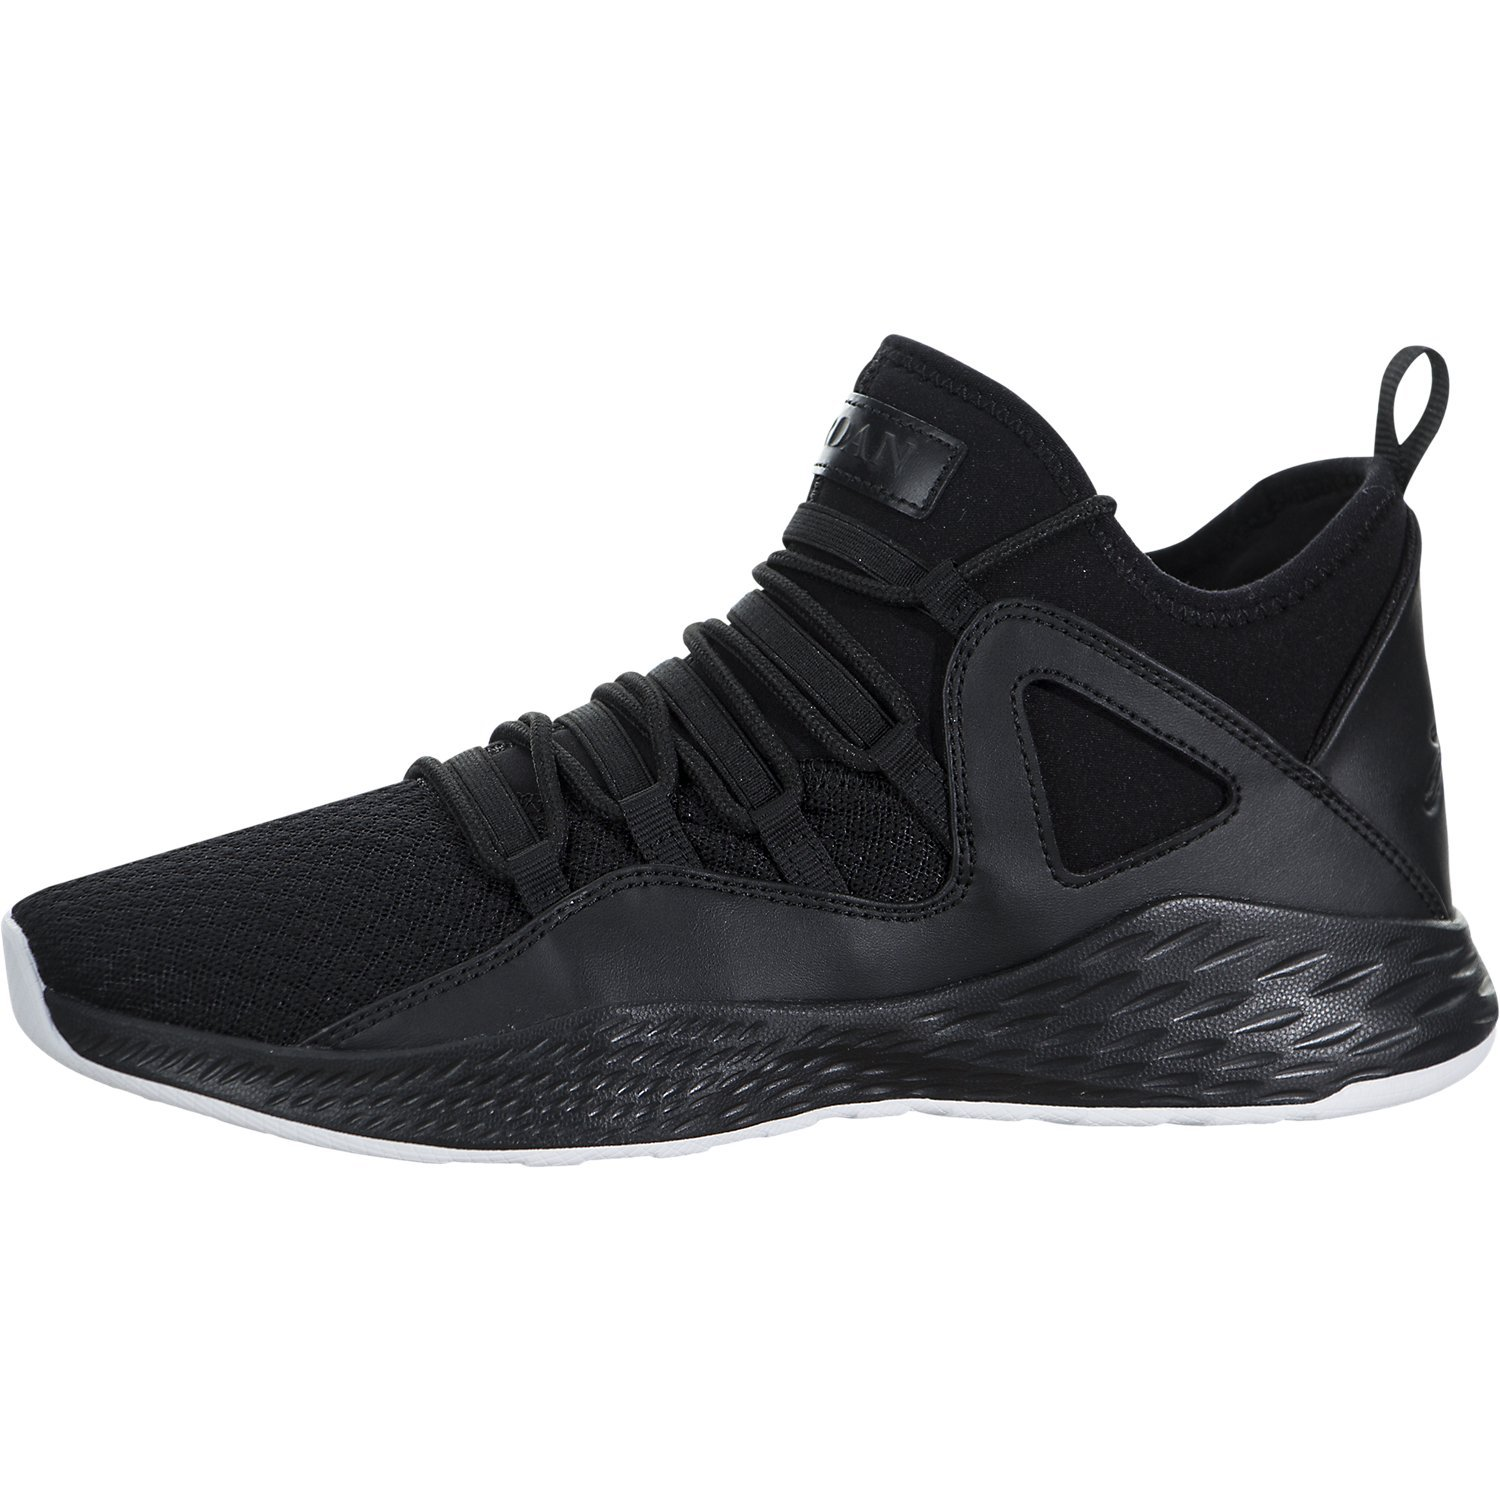 Jordan Nike Kids Formula 23 Bg Black/Black White Basketball Shoe 6 Kids US by Jordan